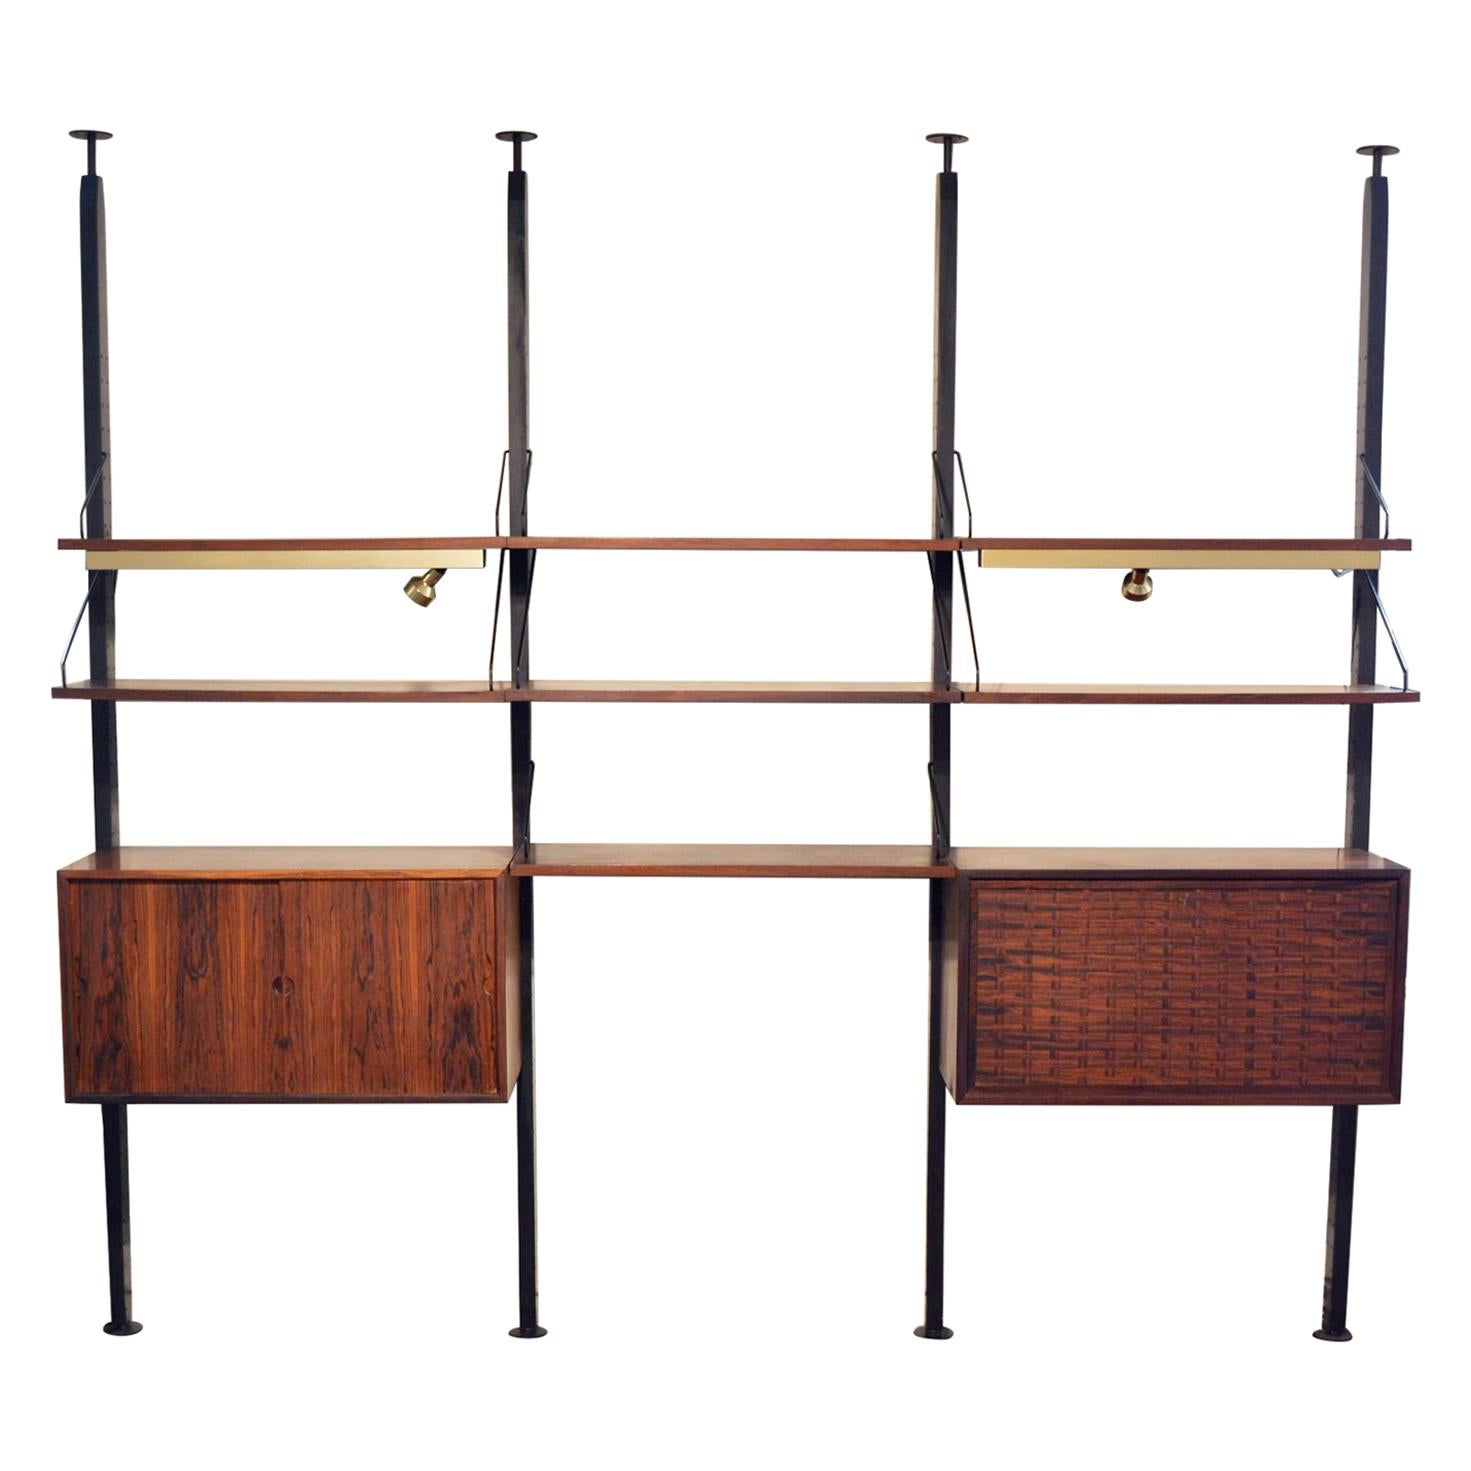 Rosewood Cadovius Lighted Royal System Wall Unit - Room Divider by Cado